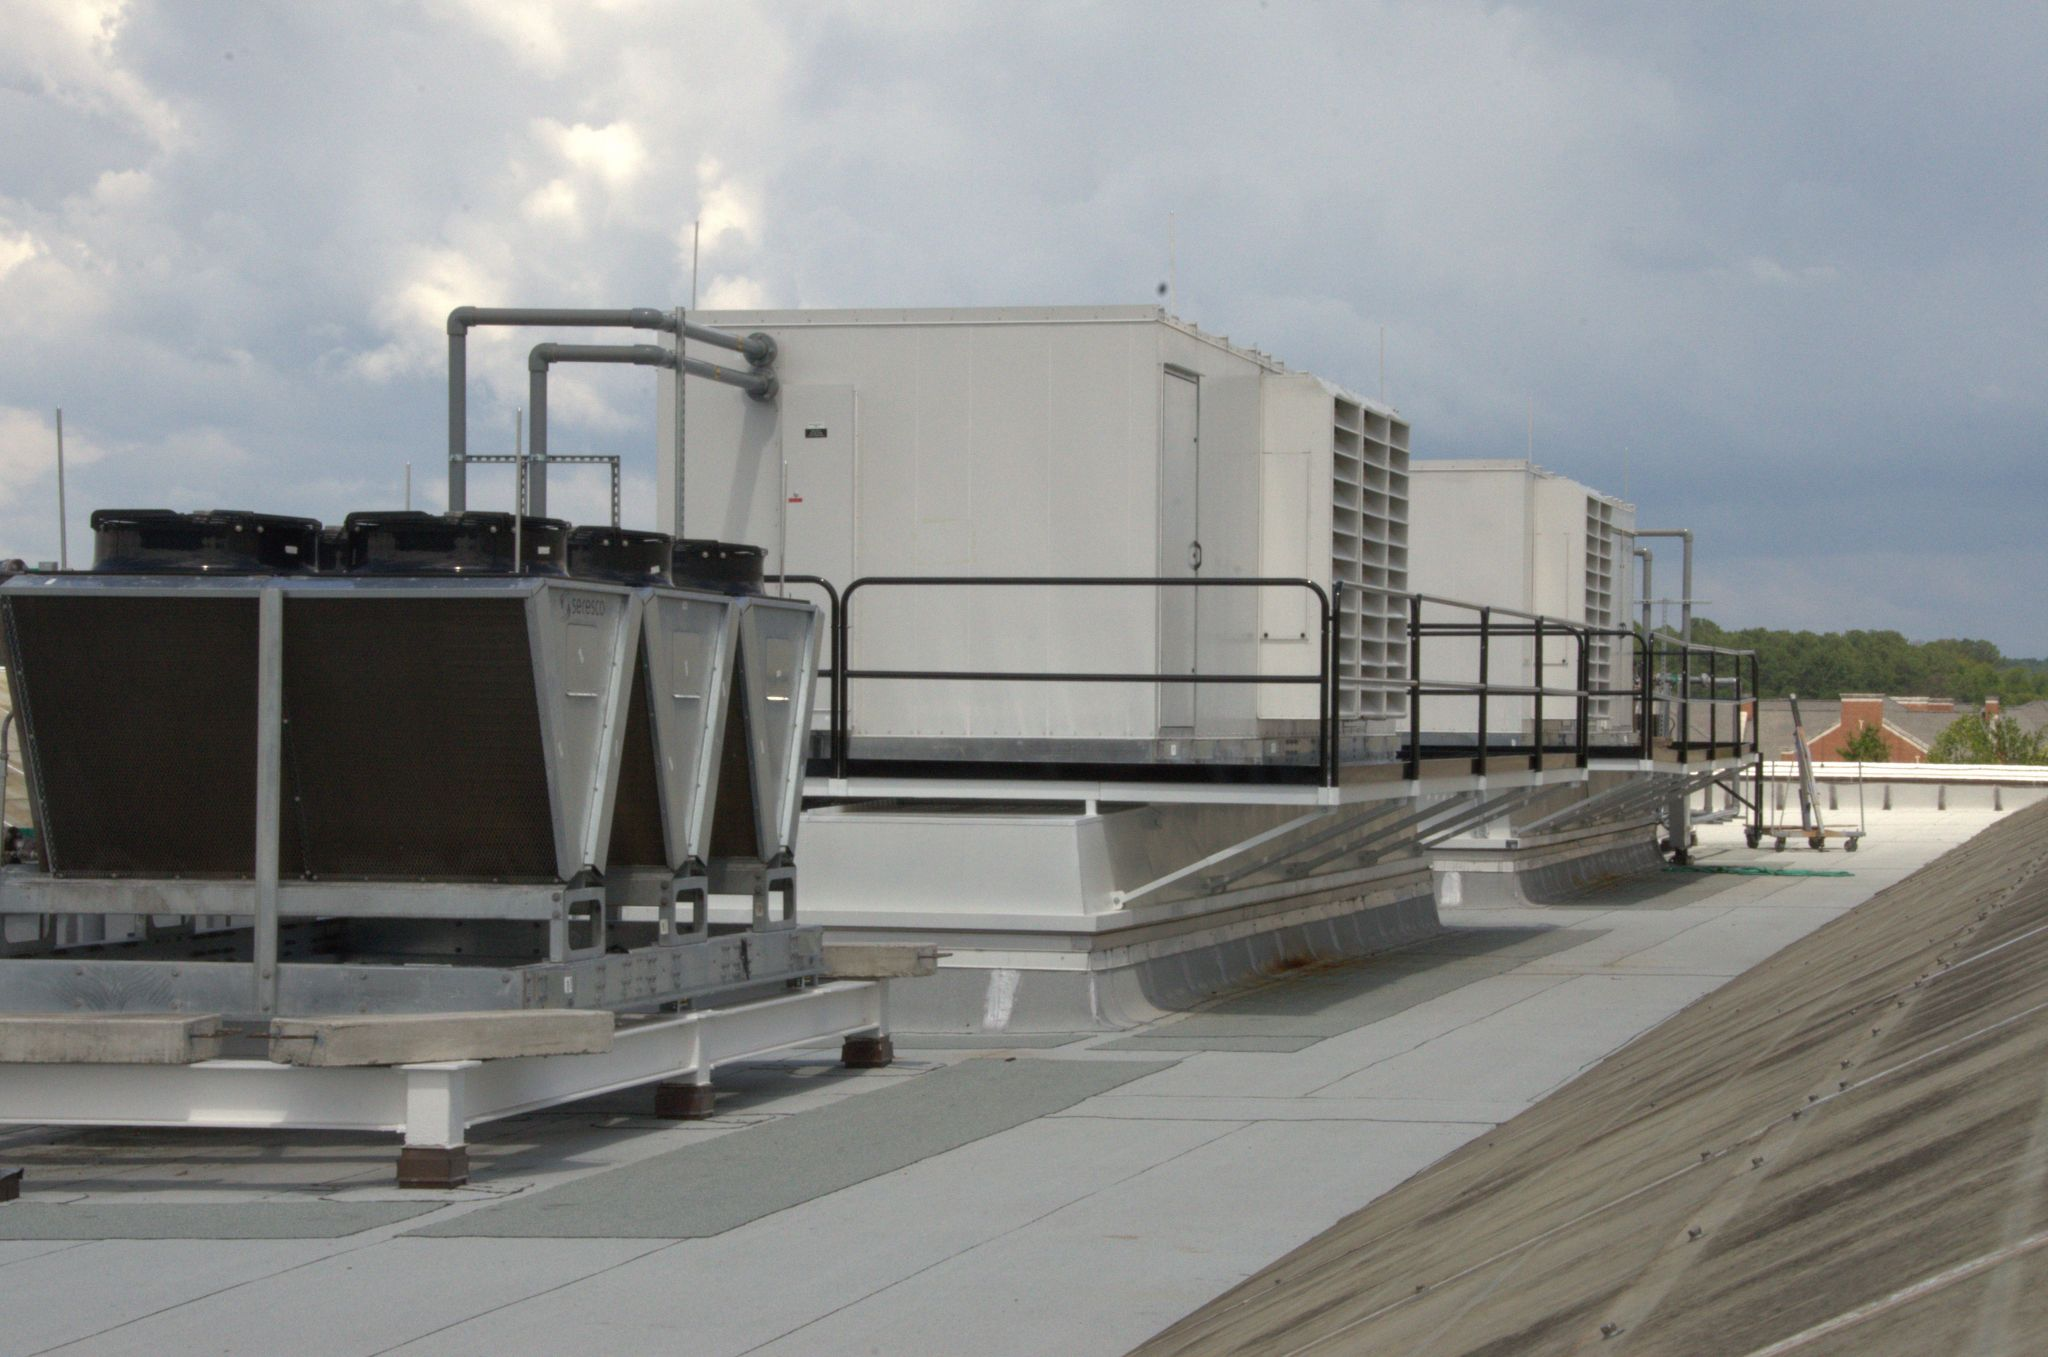 Compared to conventional dehumidifi ers, new technologies can perform at the same overall effi ciency on the hottest summer days while providing higher effi ciencies the rest of the year.